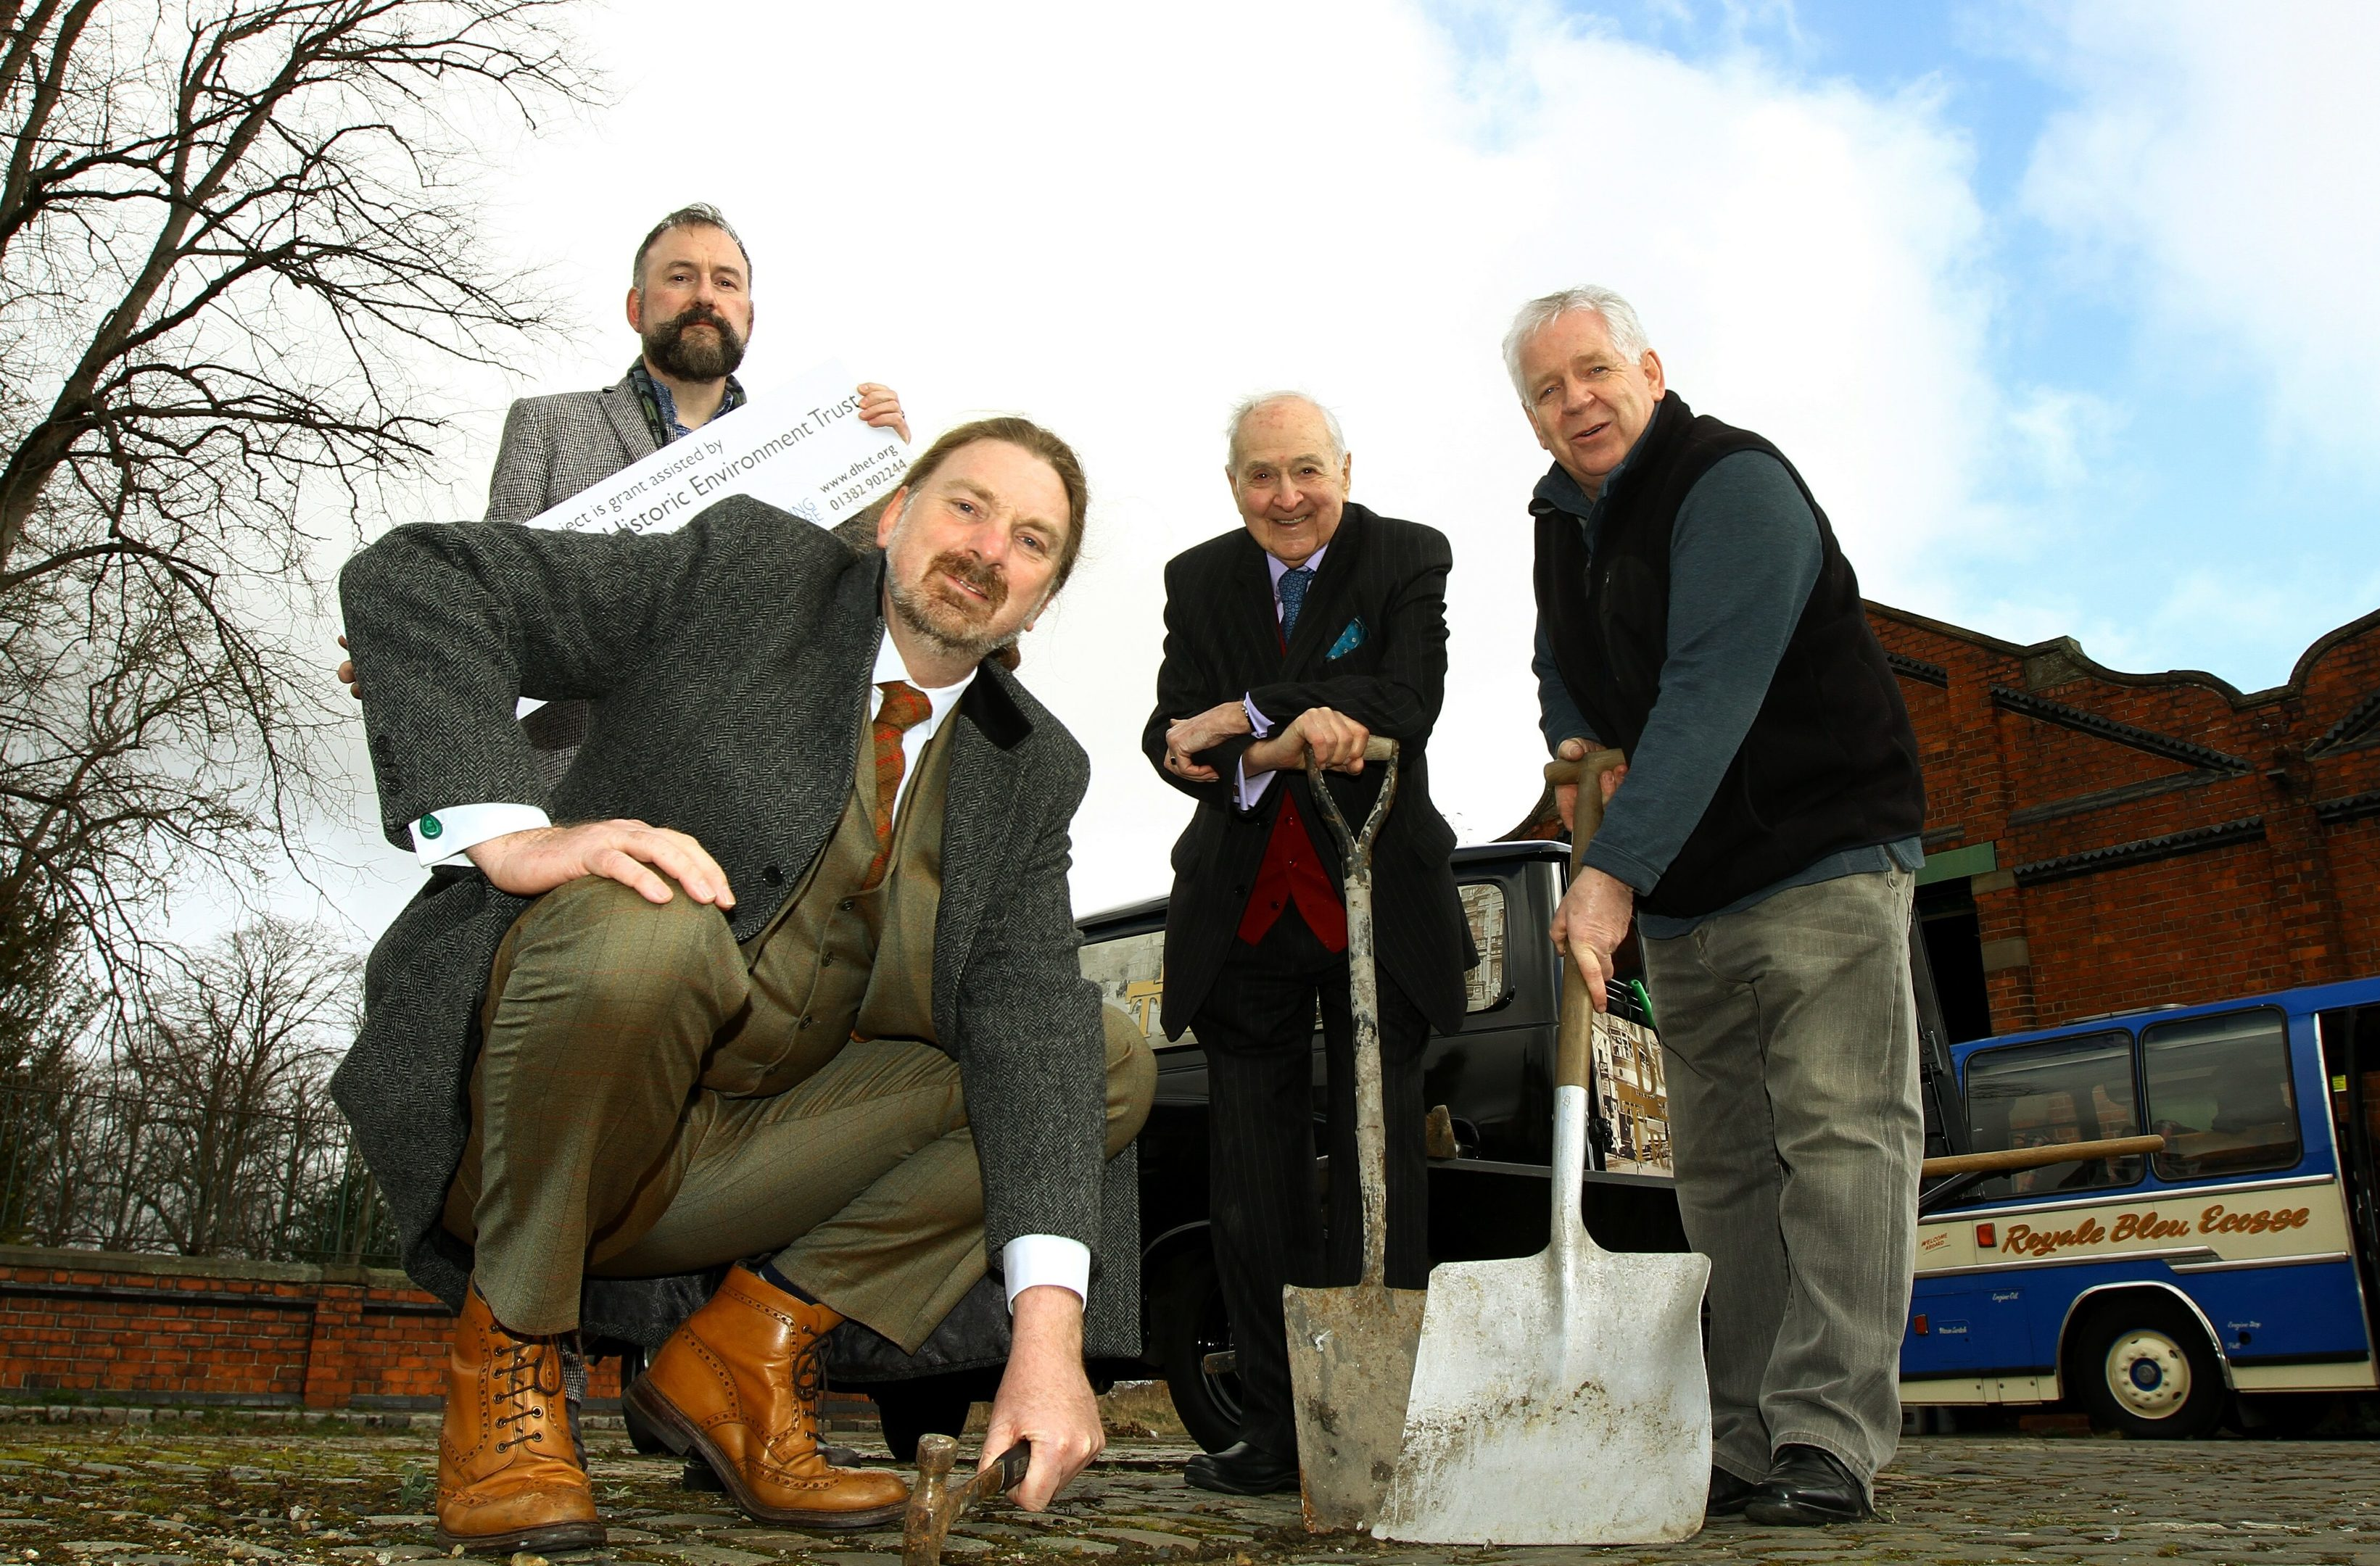 Chris Law MP lending a hand at the launch of the first phase of works on the former Maryfield Tram Depot, with L/R, Adam Swan - Director Dundee Historic Environment Trust, Norman Robertson - Trustee of the Dundee Museum of Transport and Jim McDonnell - Chairman.